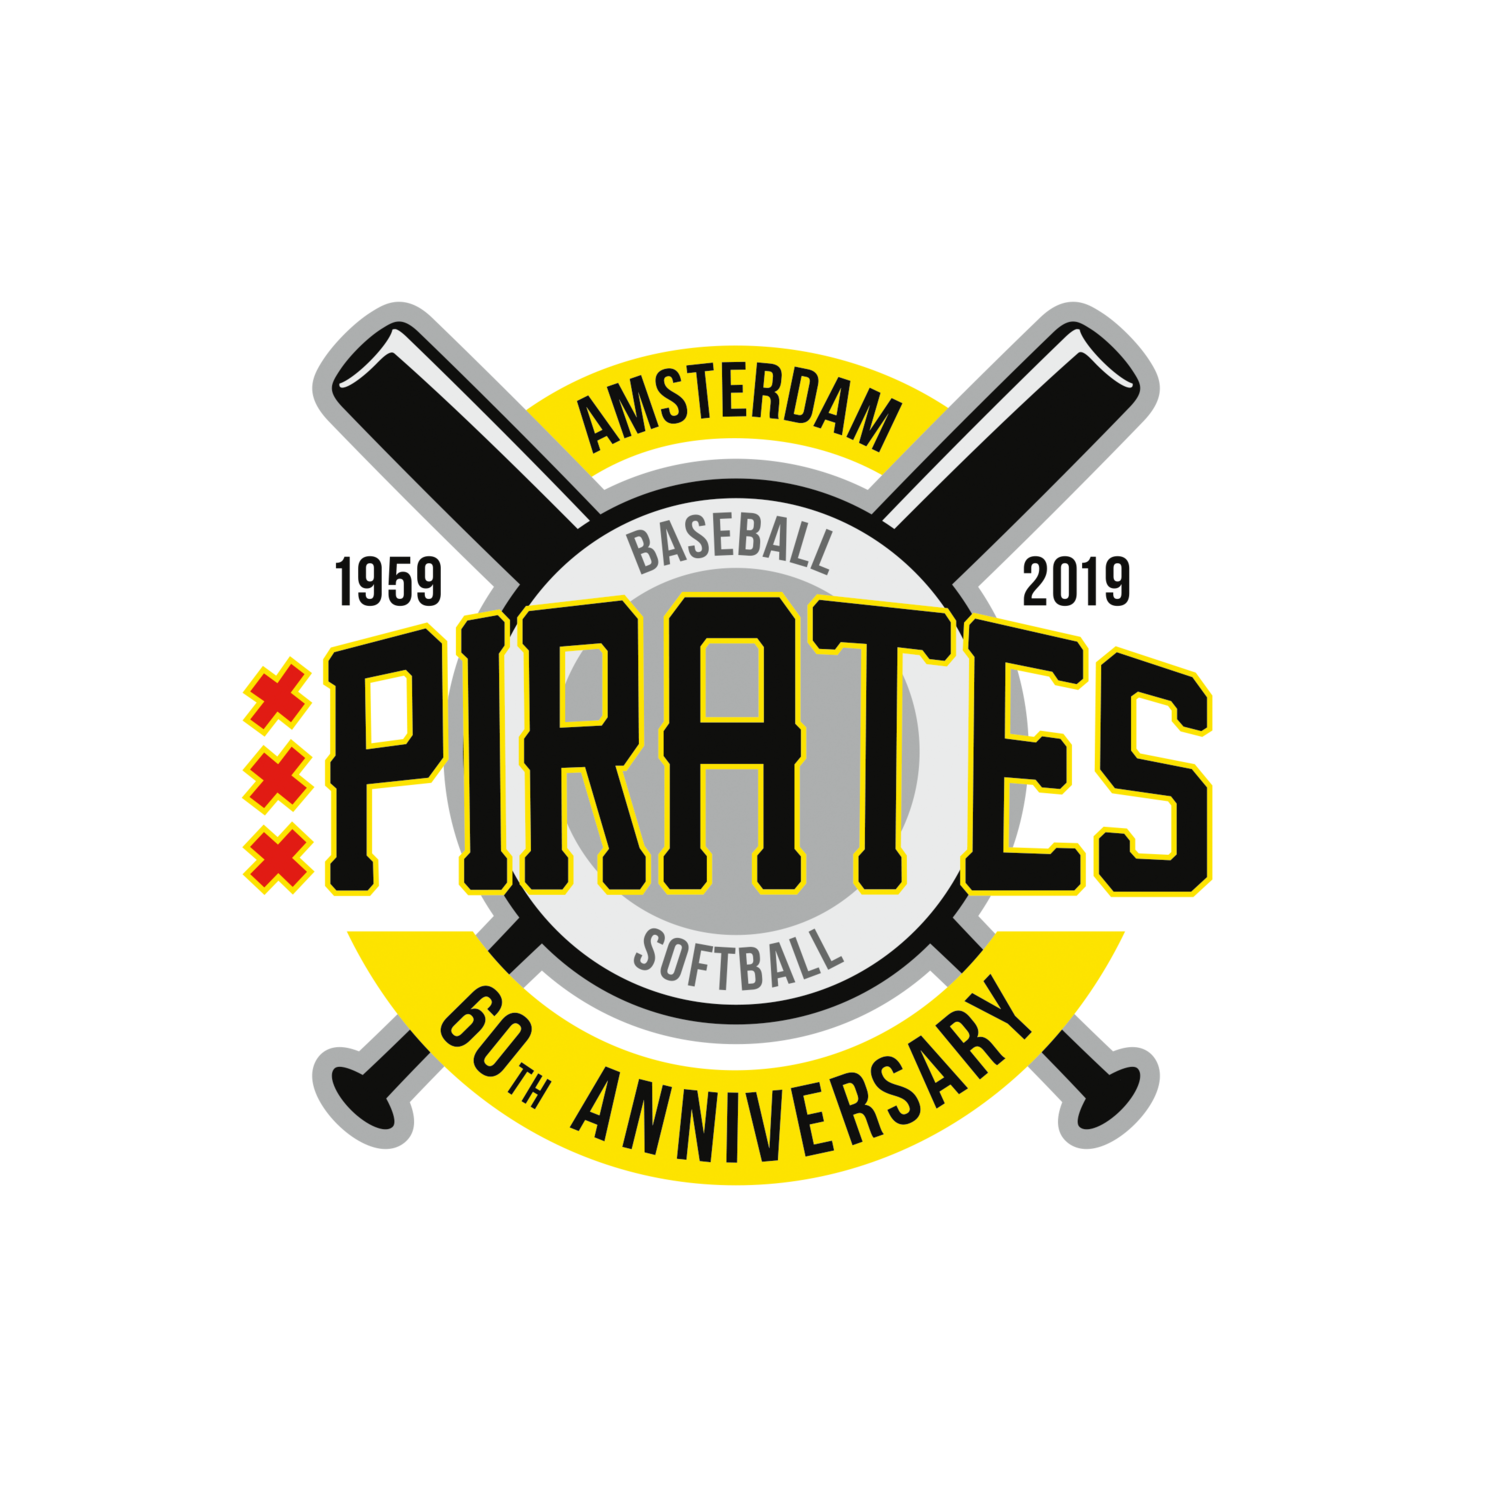 Amsterdam Pirates